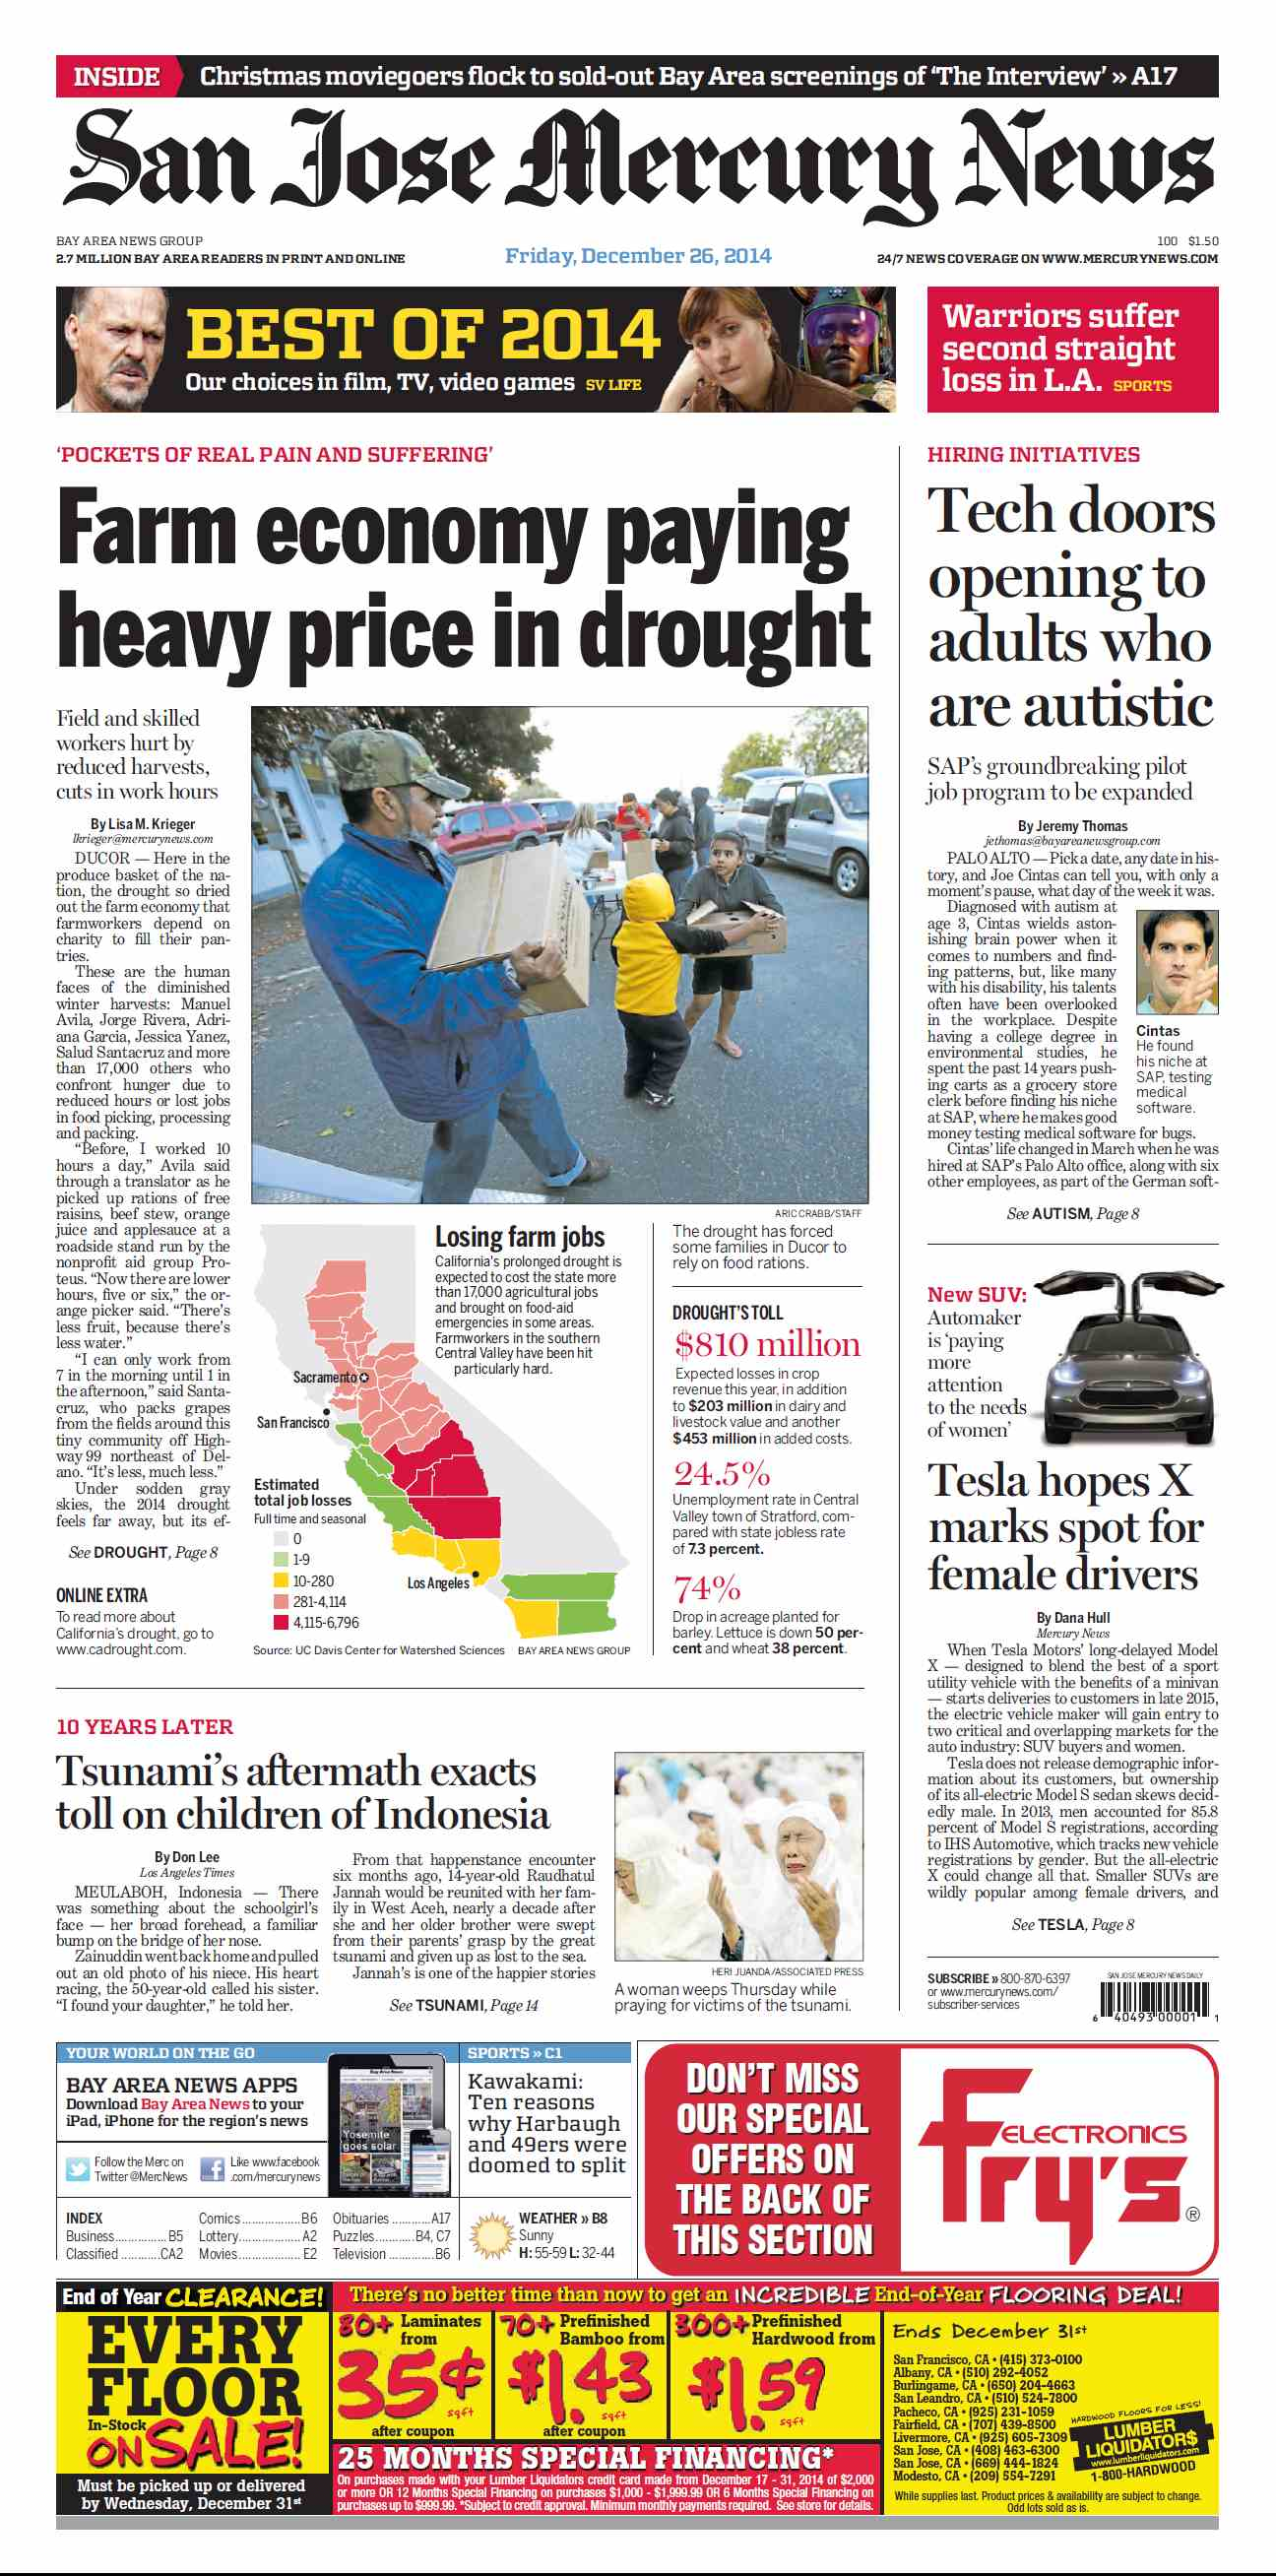 San Jose Mercury News - December 26, 2014 free download